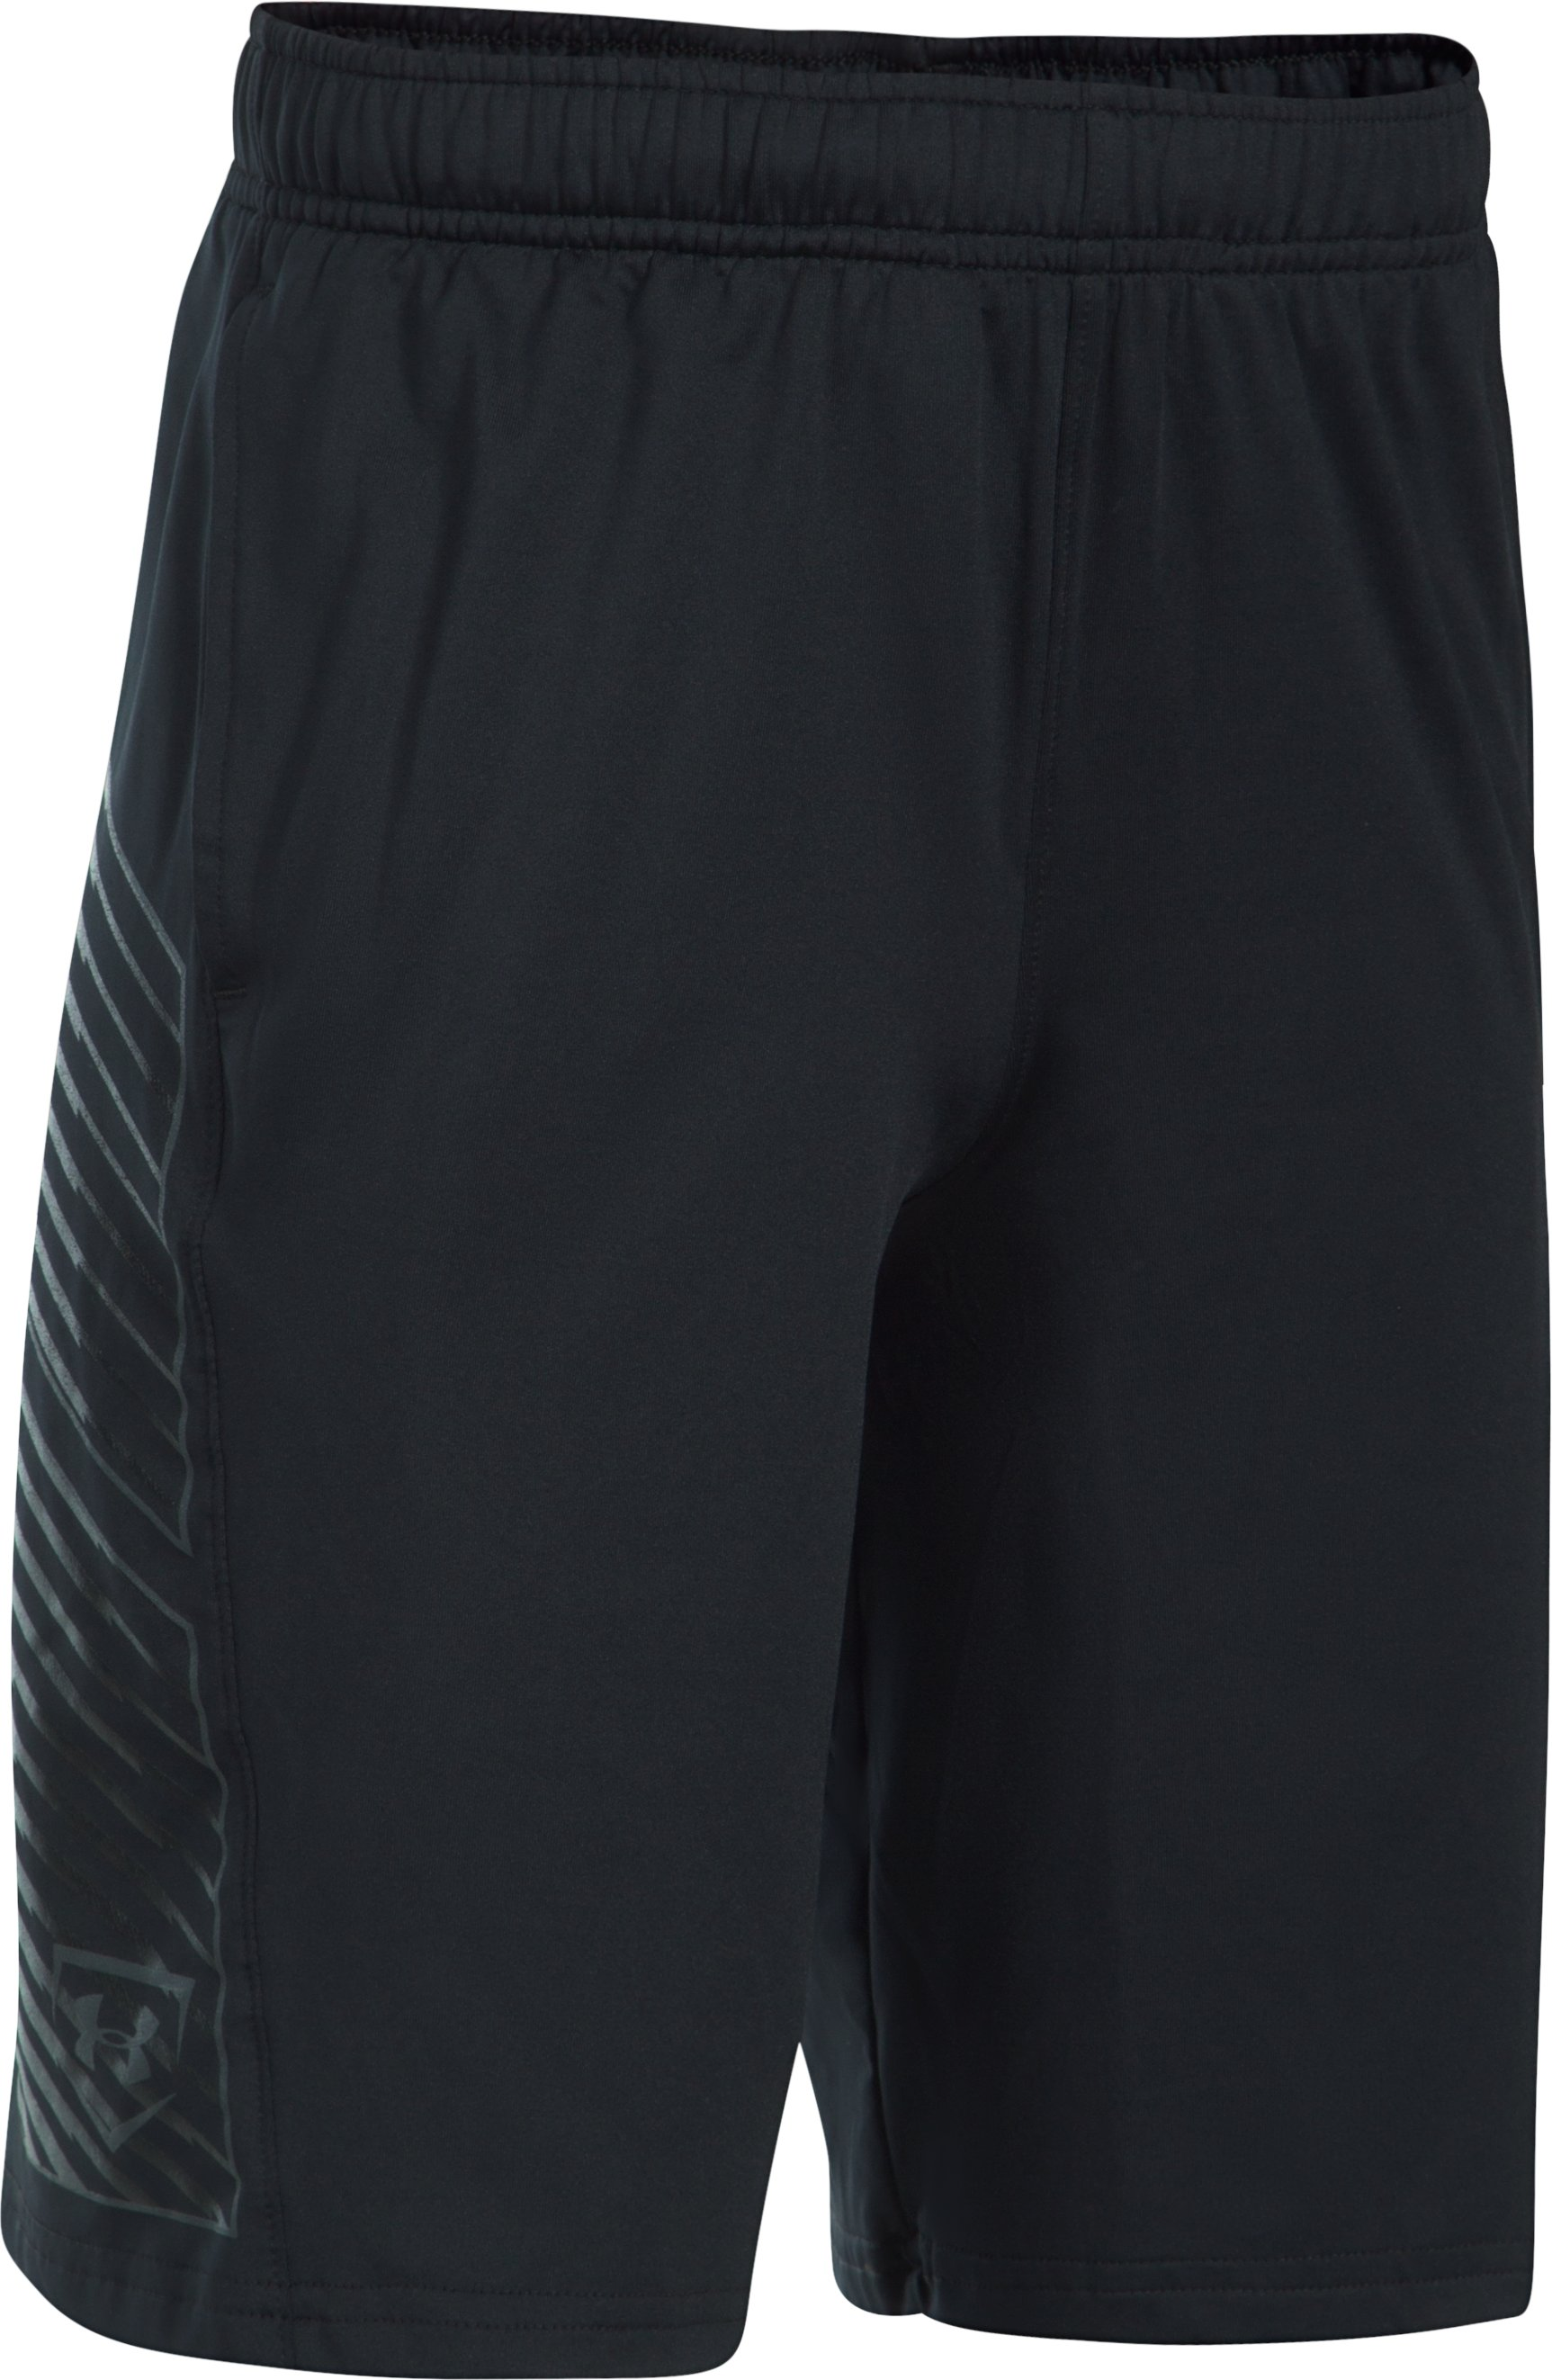 Boys' UA Baseball Training Shorts, Black , undefined